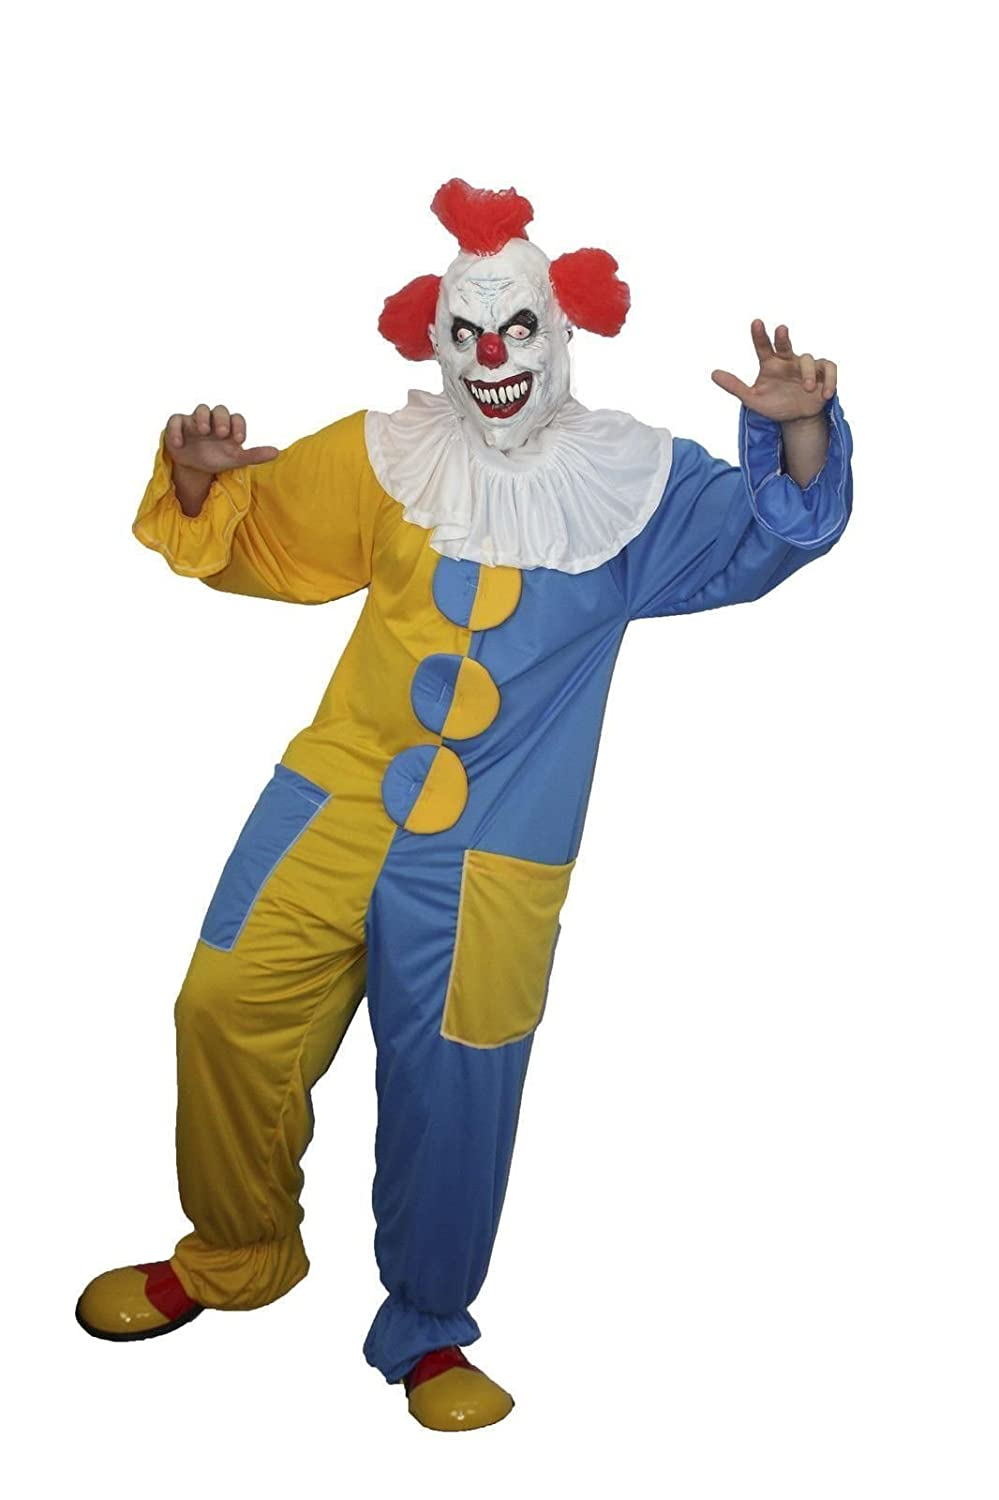 IT the Clown Costume Scary Halloween Fancy dress Circus Amazon.co.uk Toys u0026 Games  sc 1 st  Amazon UK & IT the Clown Costume Scary Halloween Fancy dress Circus: Amazon.co ...